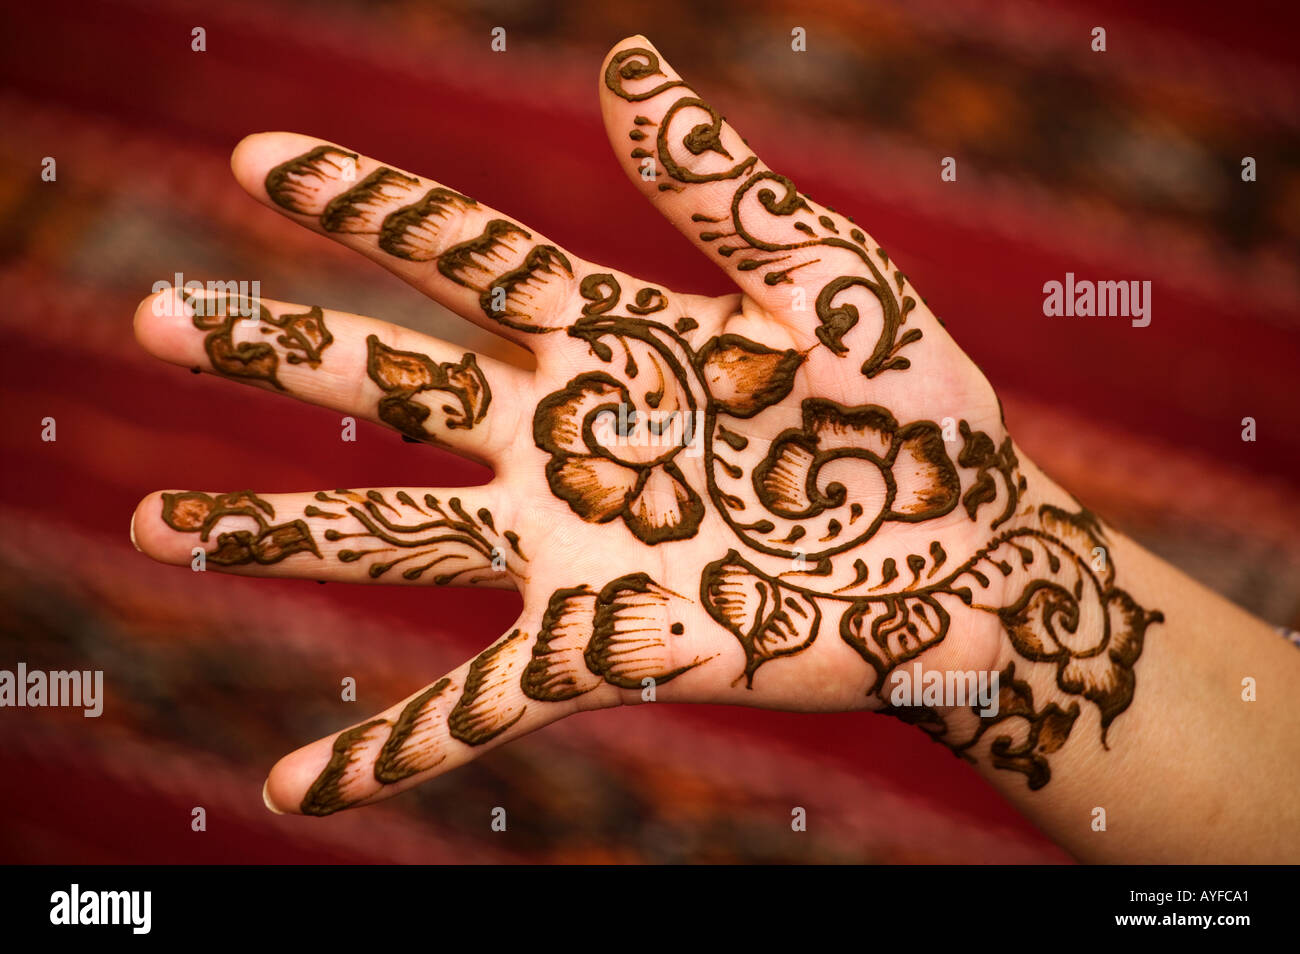 Henna is used to decorate womans hands and feet Model released Morocco - Stock Image